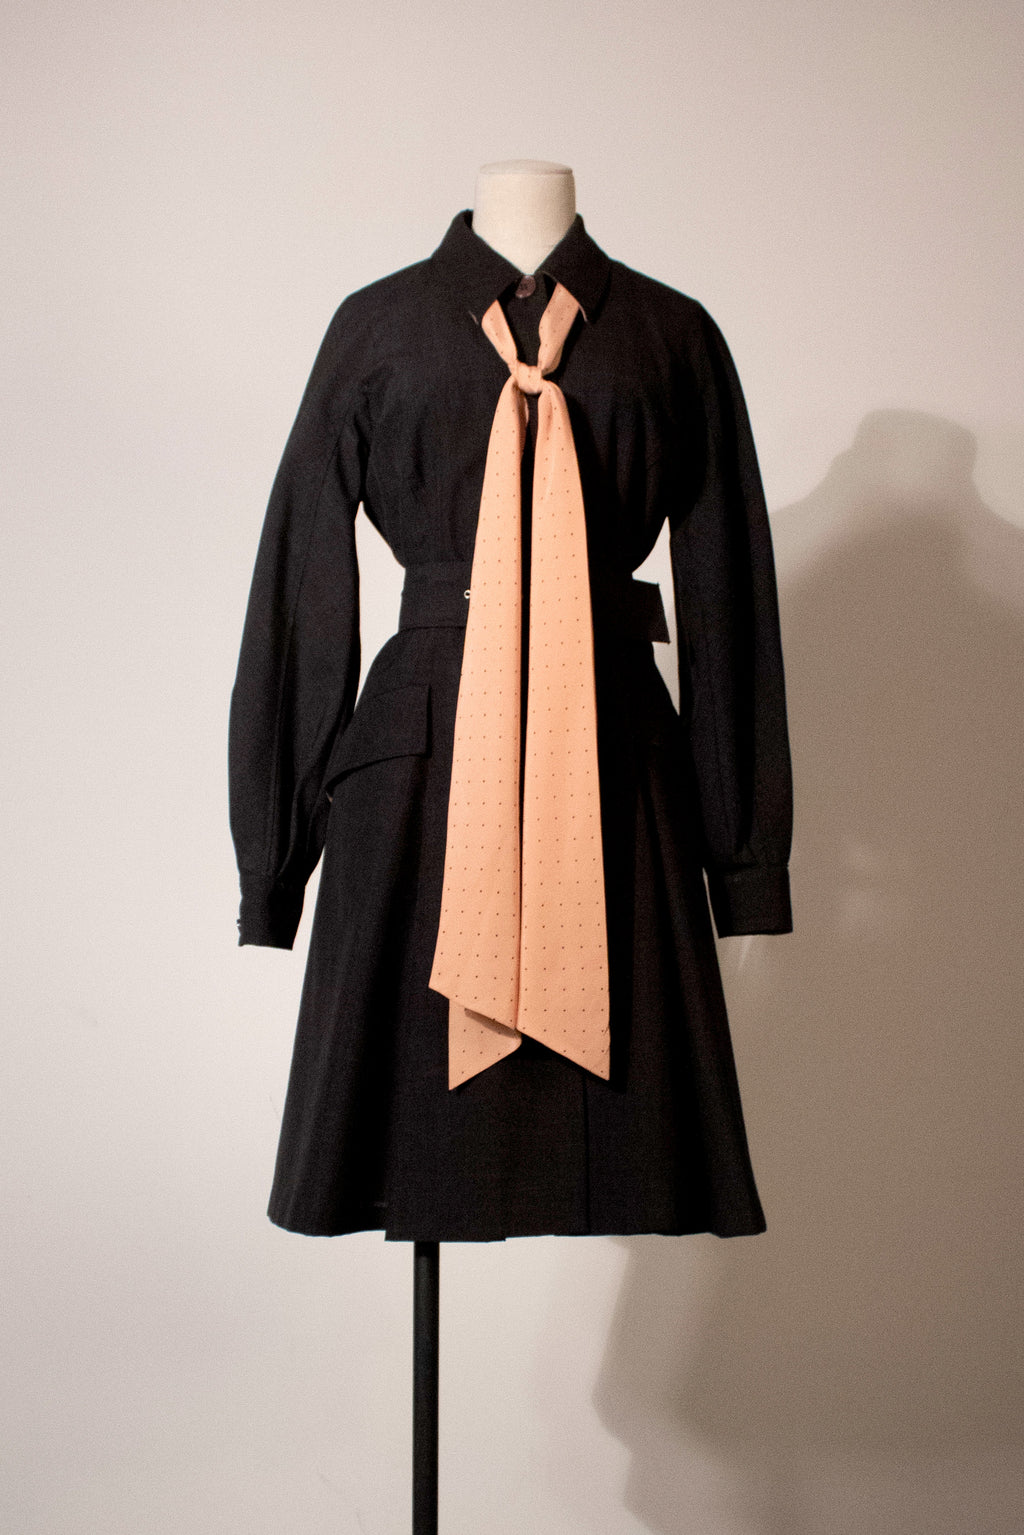 Christian Dior grey wool blend coat dress